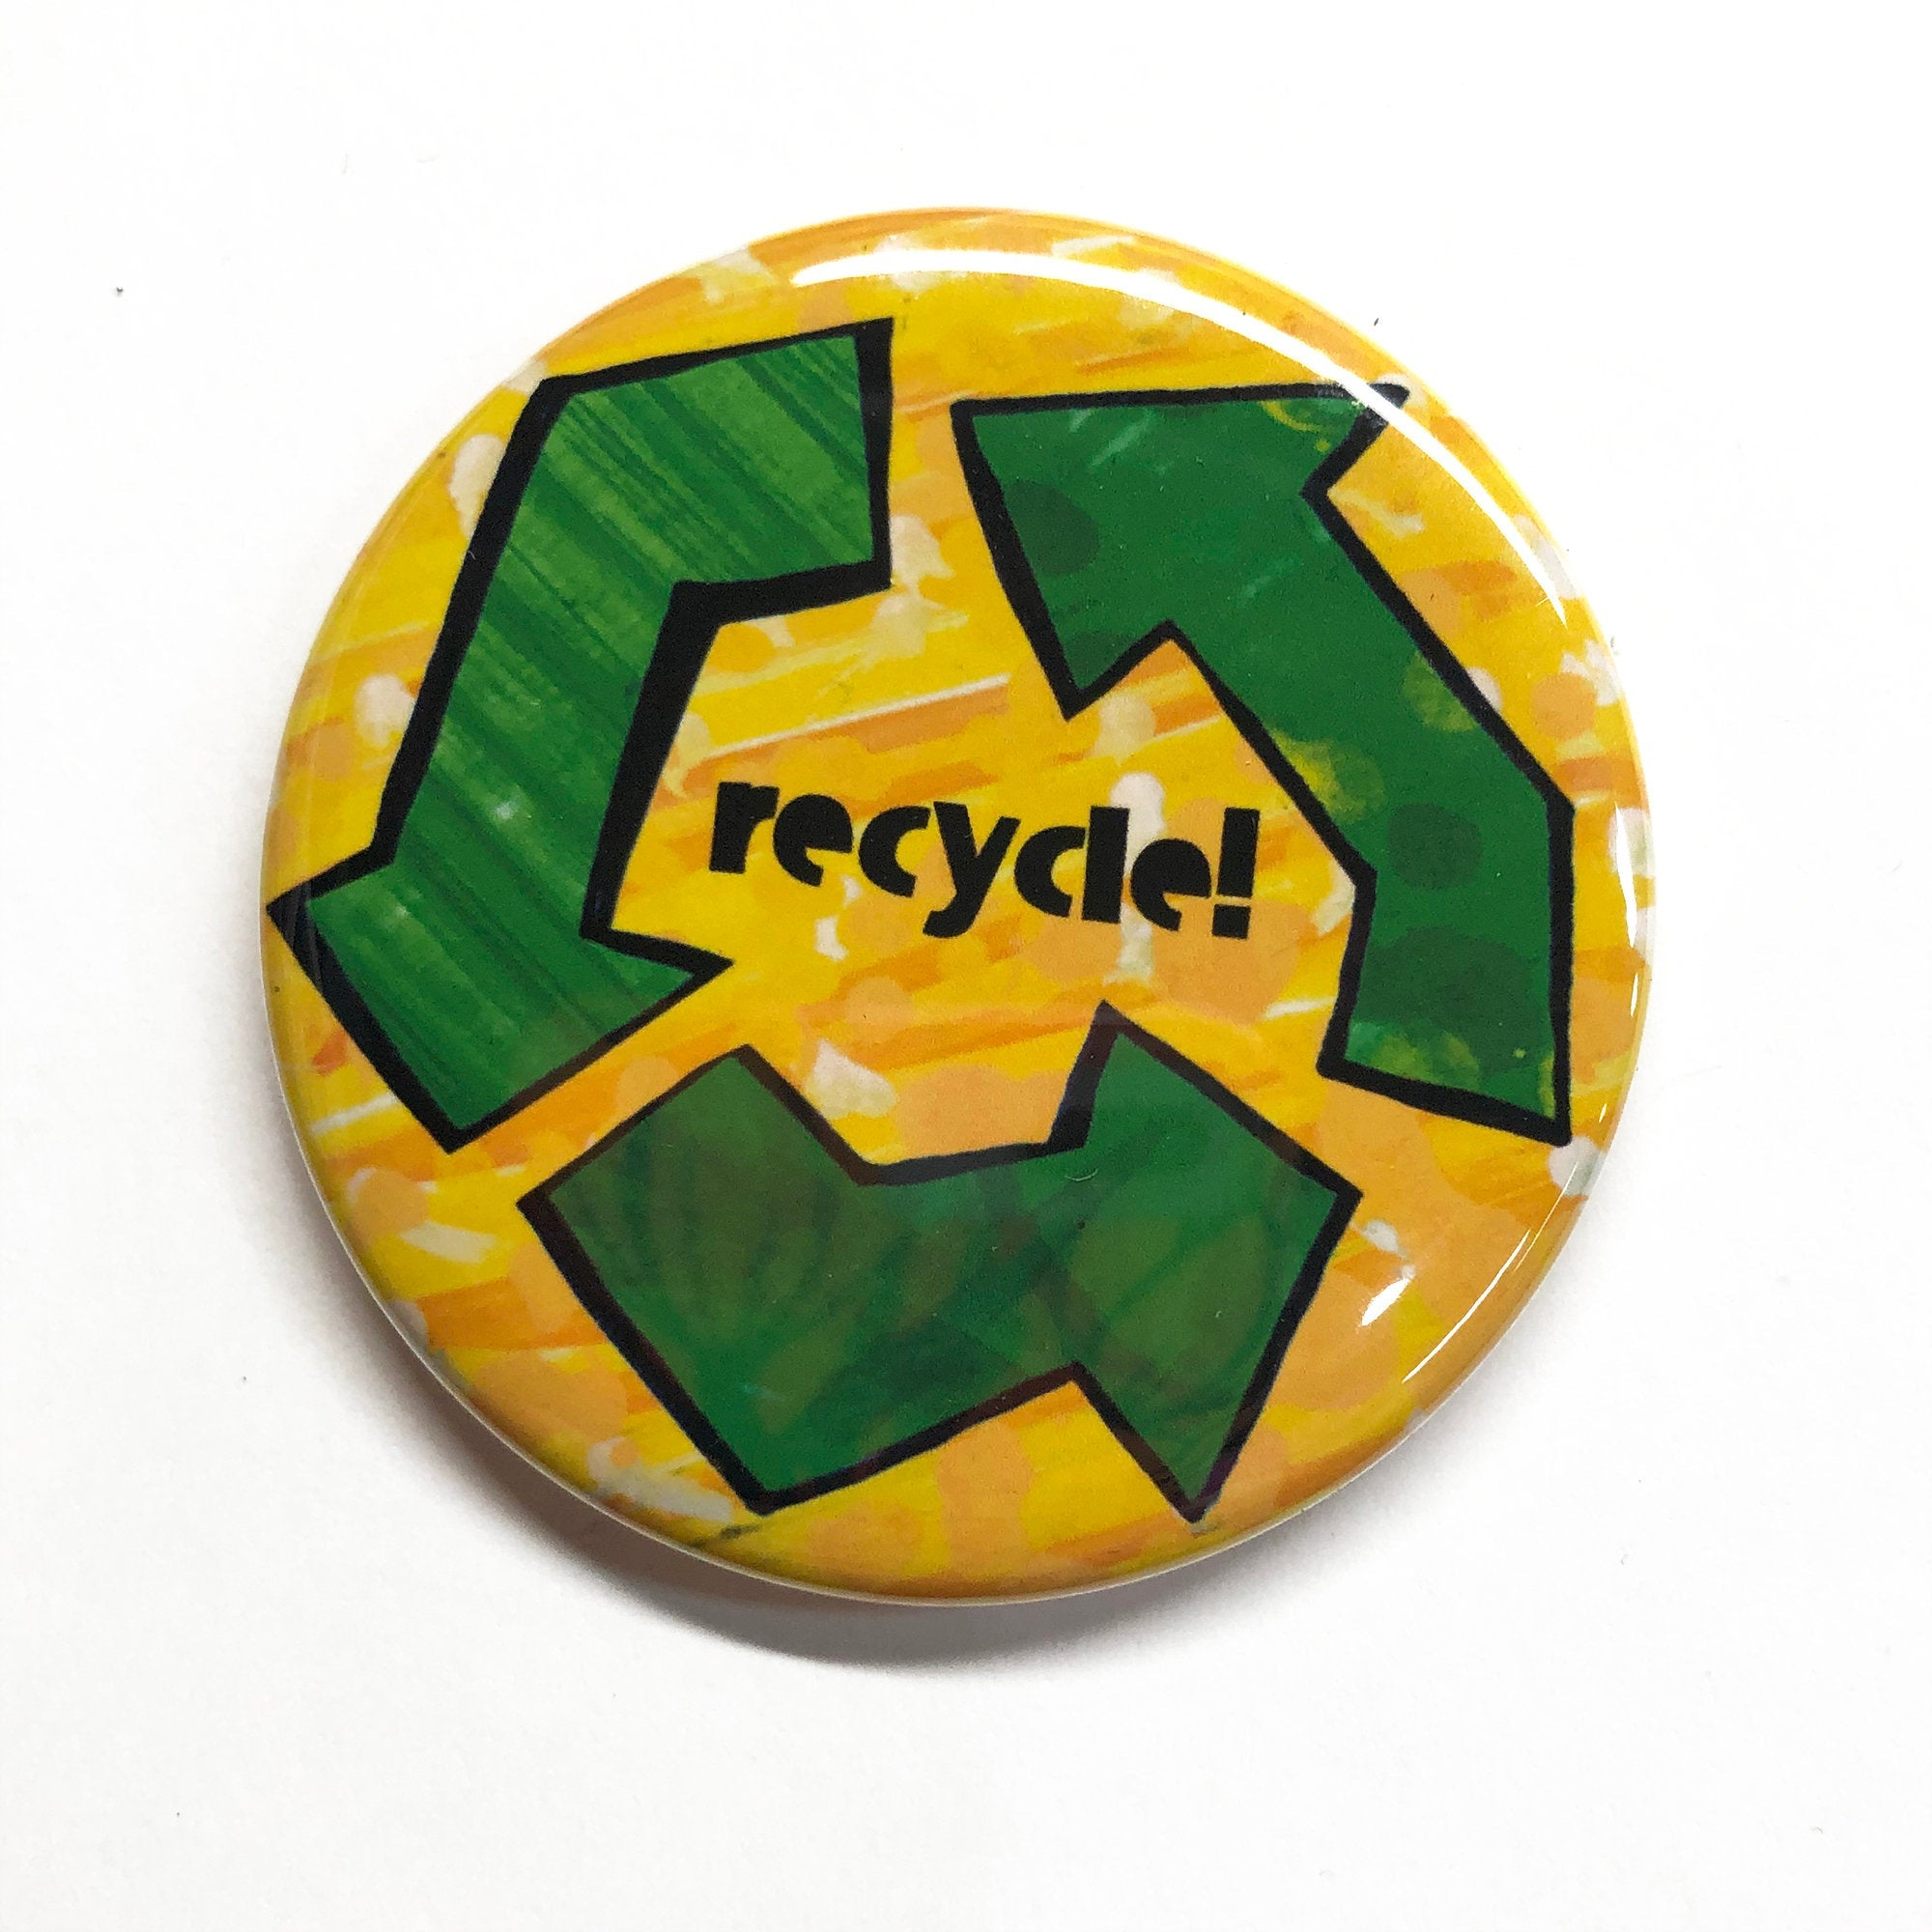 Recycling Pin Back Button or Fridge Magnet